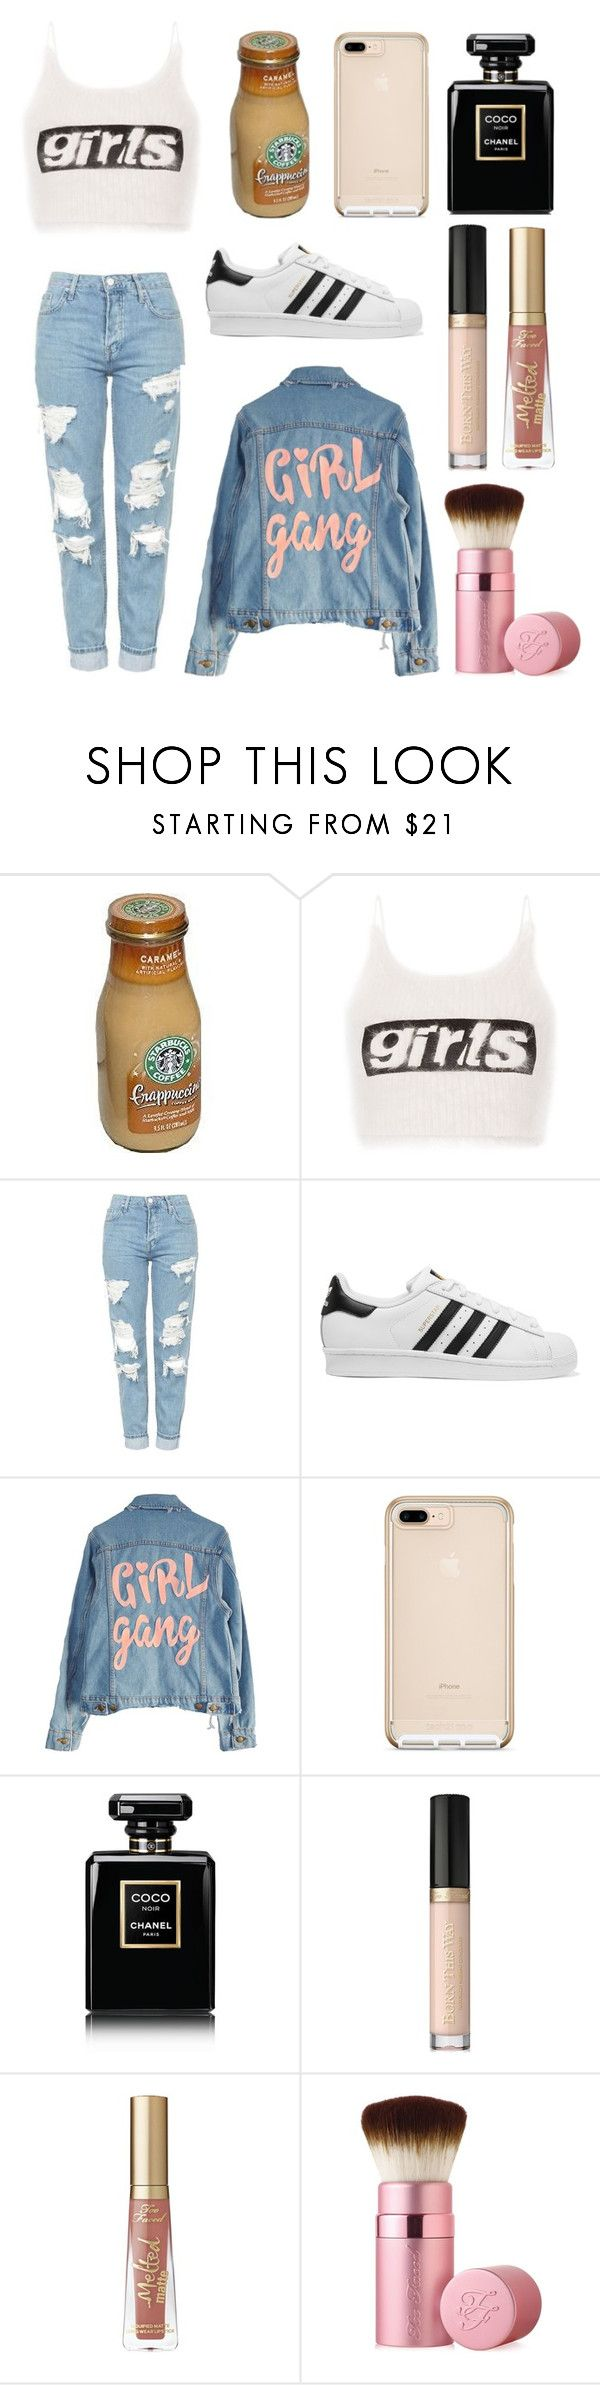 """""""girls"""" by soph-133 ❤ liked on Polyvore featuring Alexander Wang, Topshop, adidas Originals, High Heels Suicide, Chanel and Too Faced Cosmetics"""